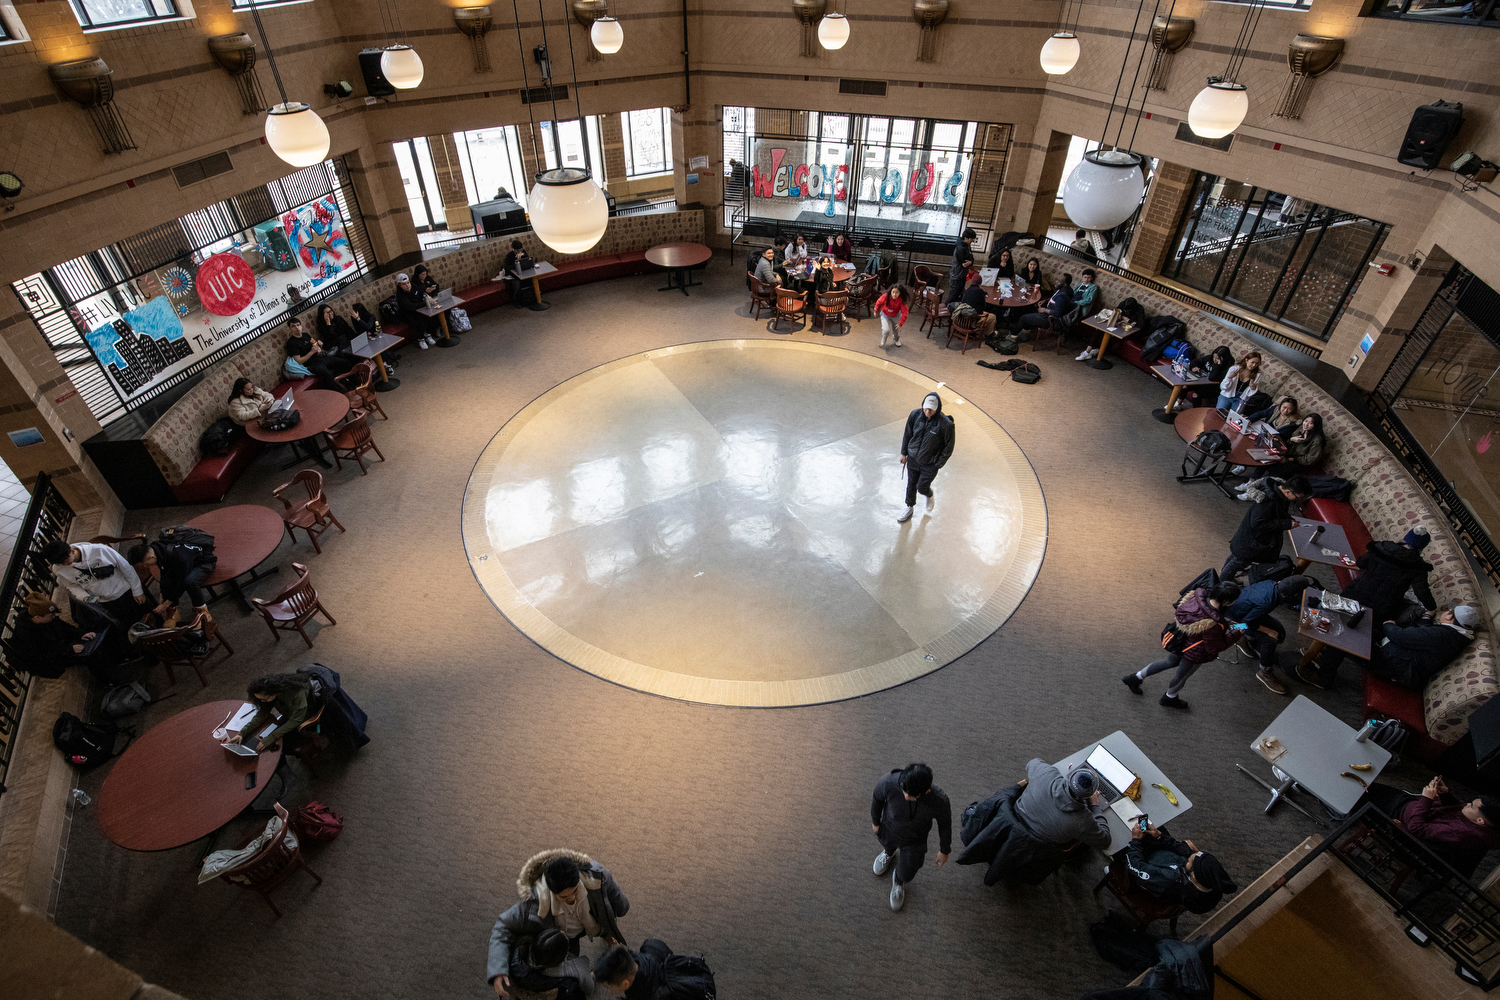 The atrium of SRCN comes to life as students catch up with each other upon returning to campus for the semester.